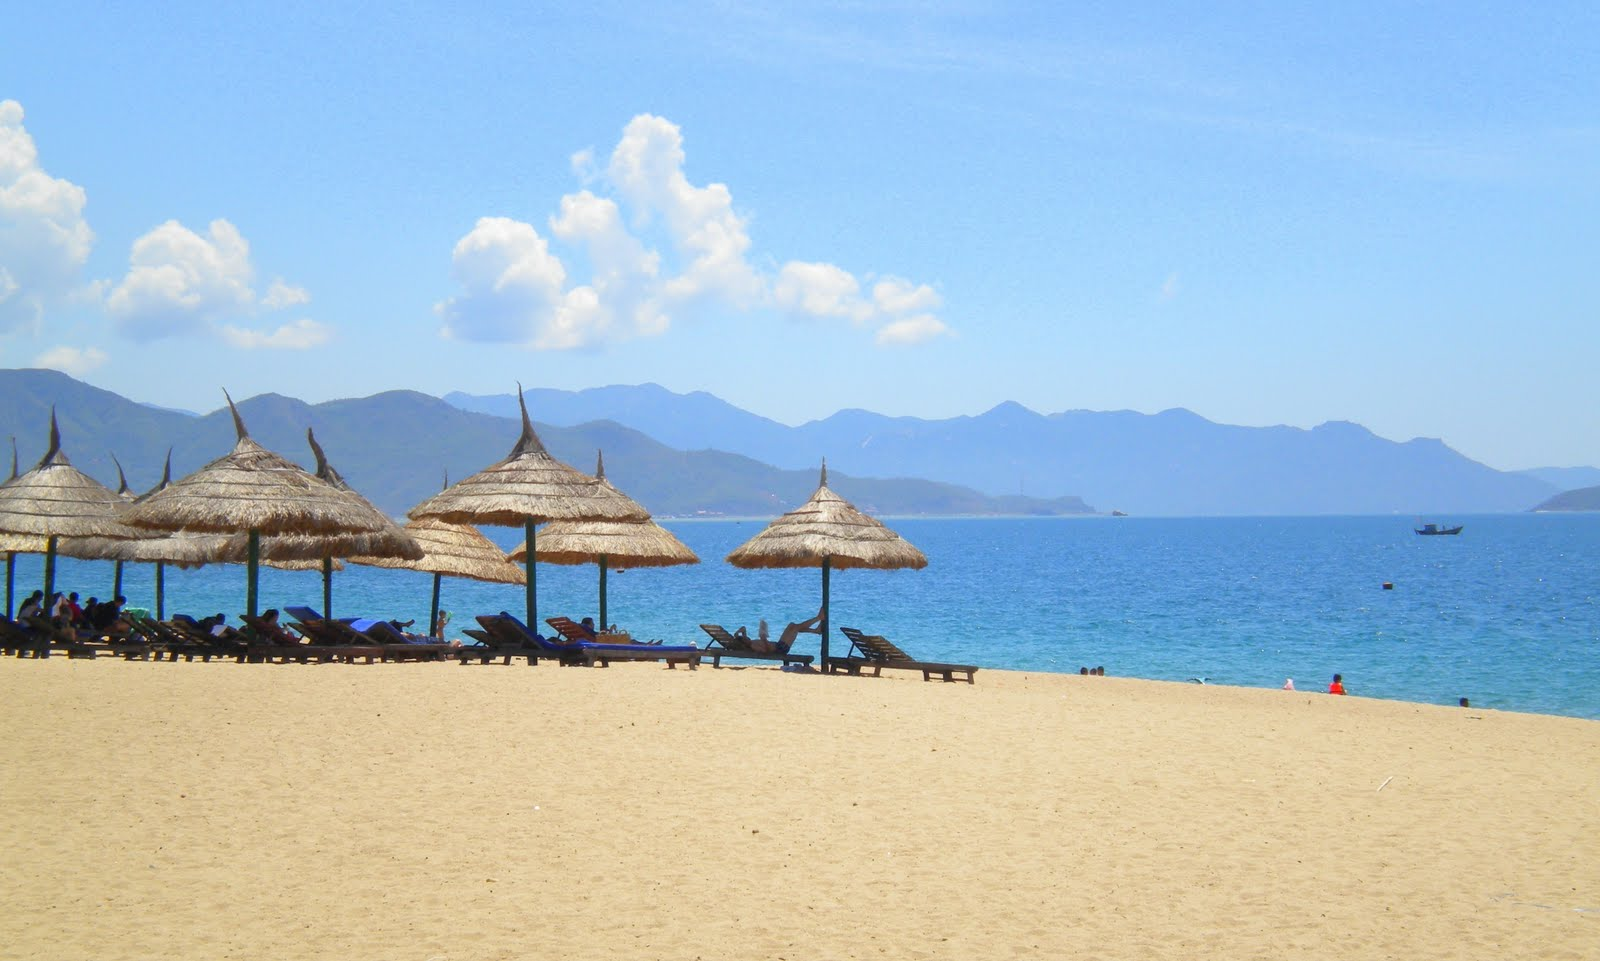 A short description of Vietnamese beaches